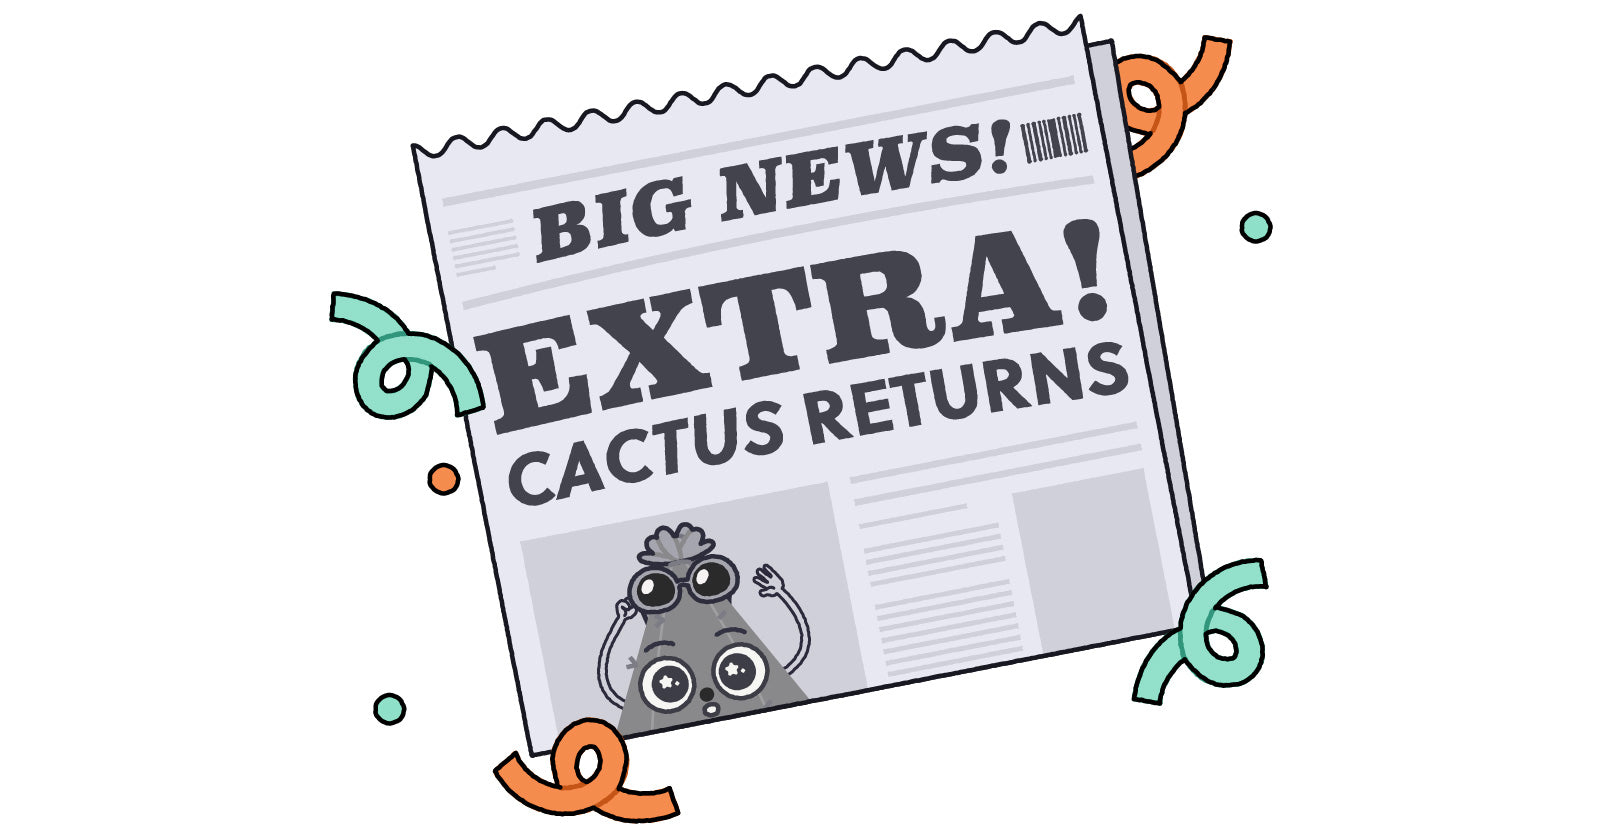 Nugget Newspaper - Cactus is back!